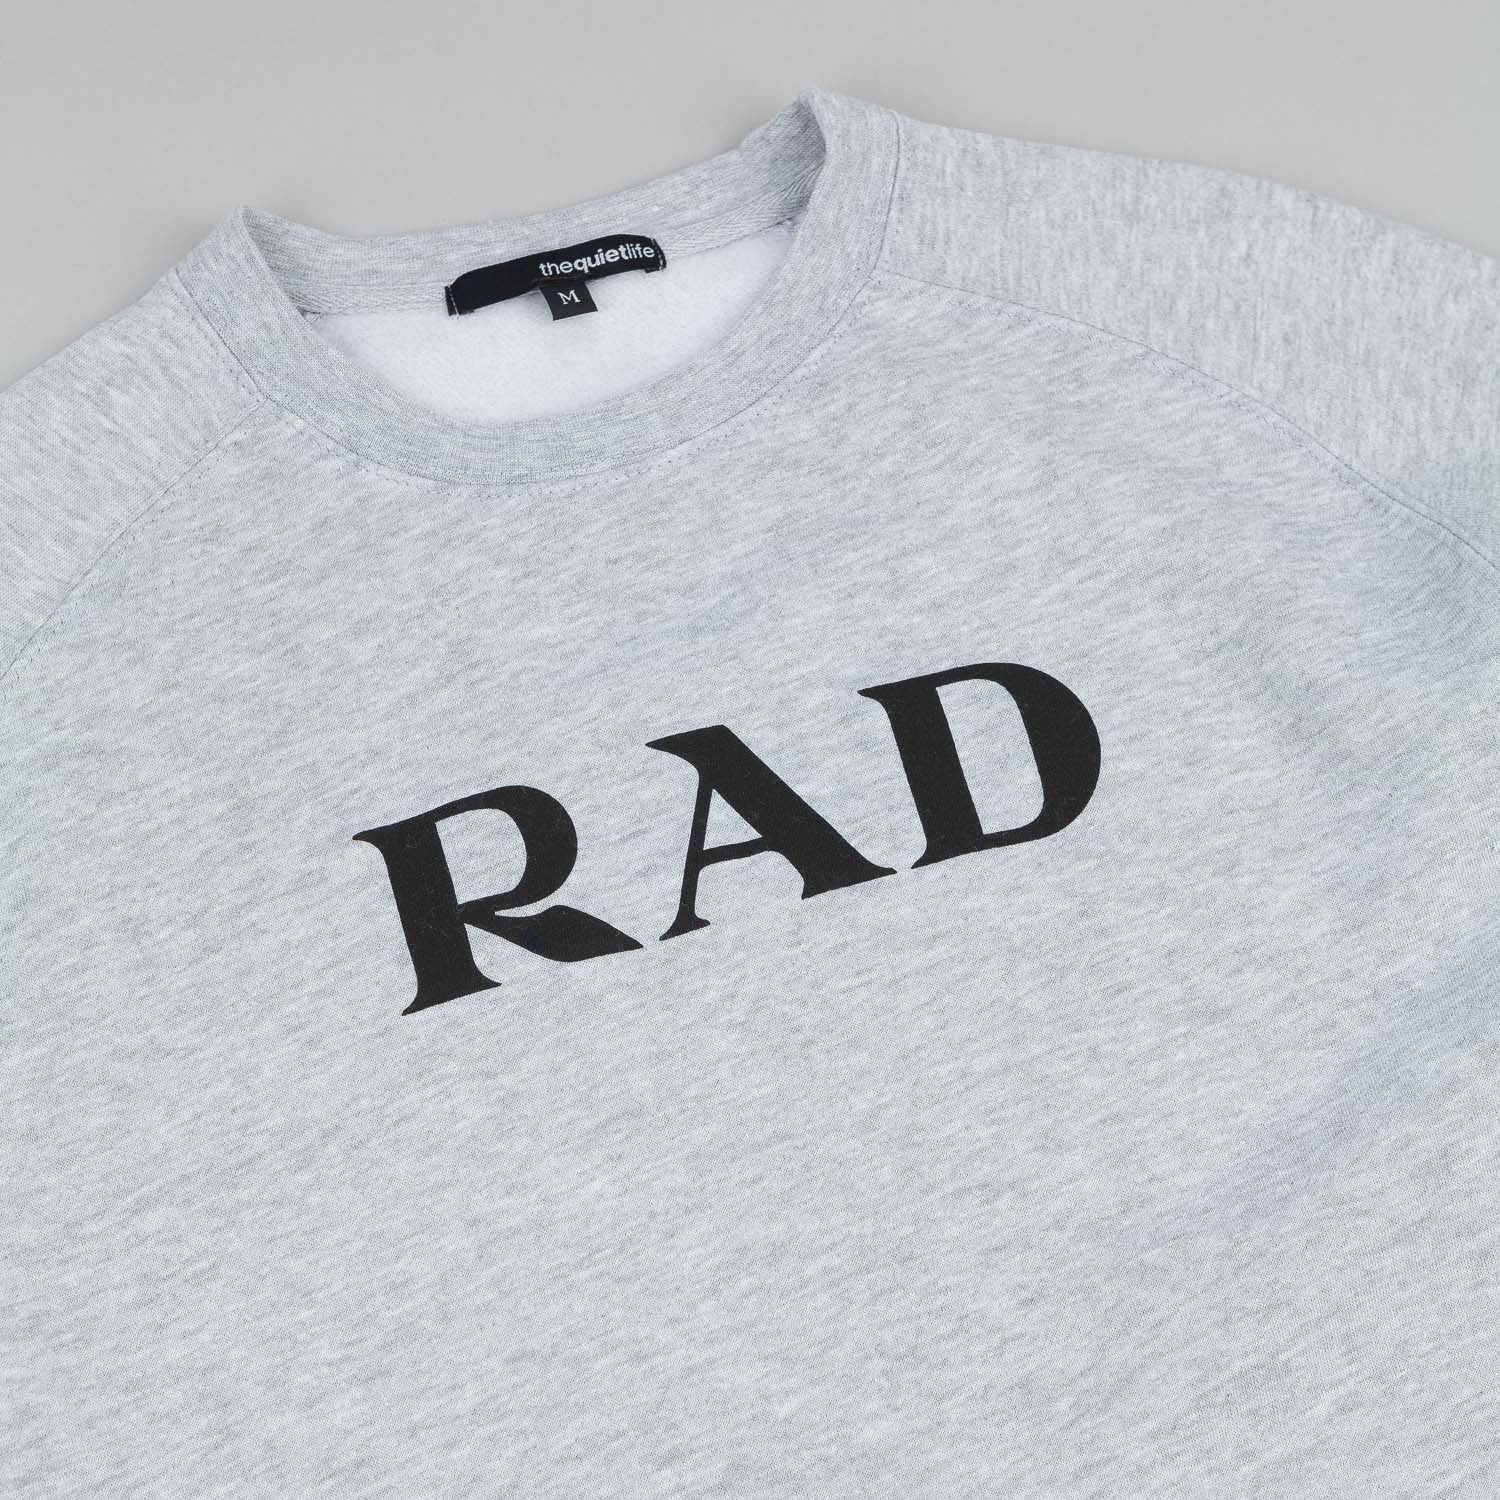 The Quiet Life Rad Crew Neck Sweatshirt - Heather Grey